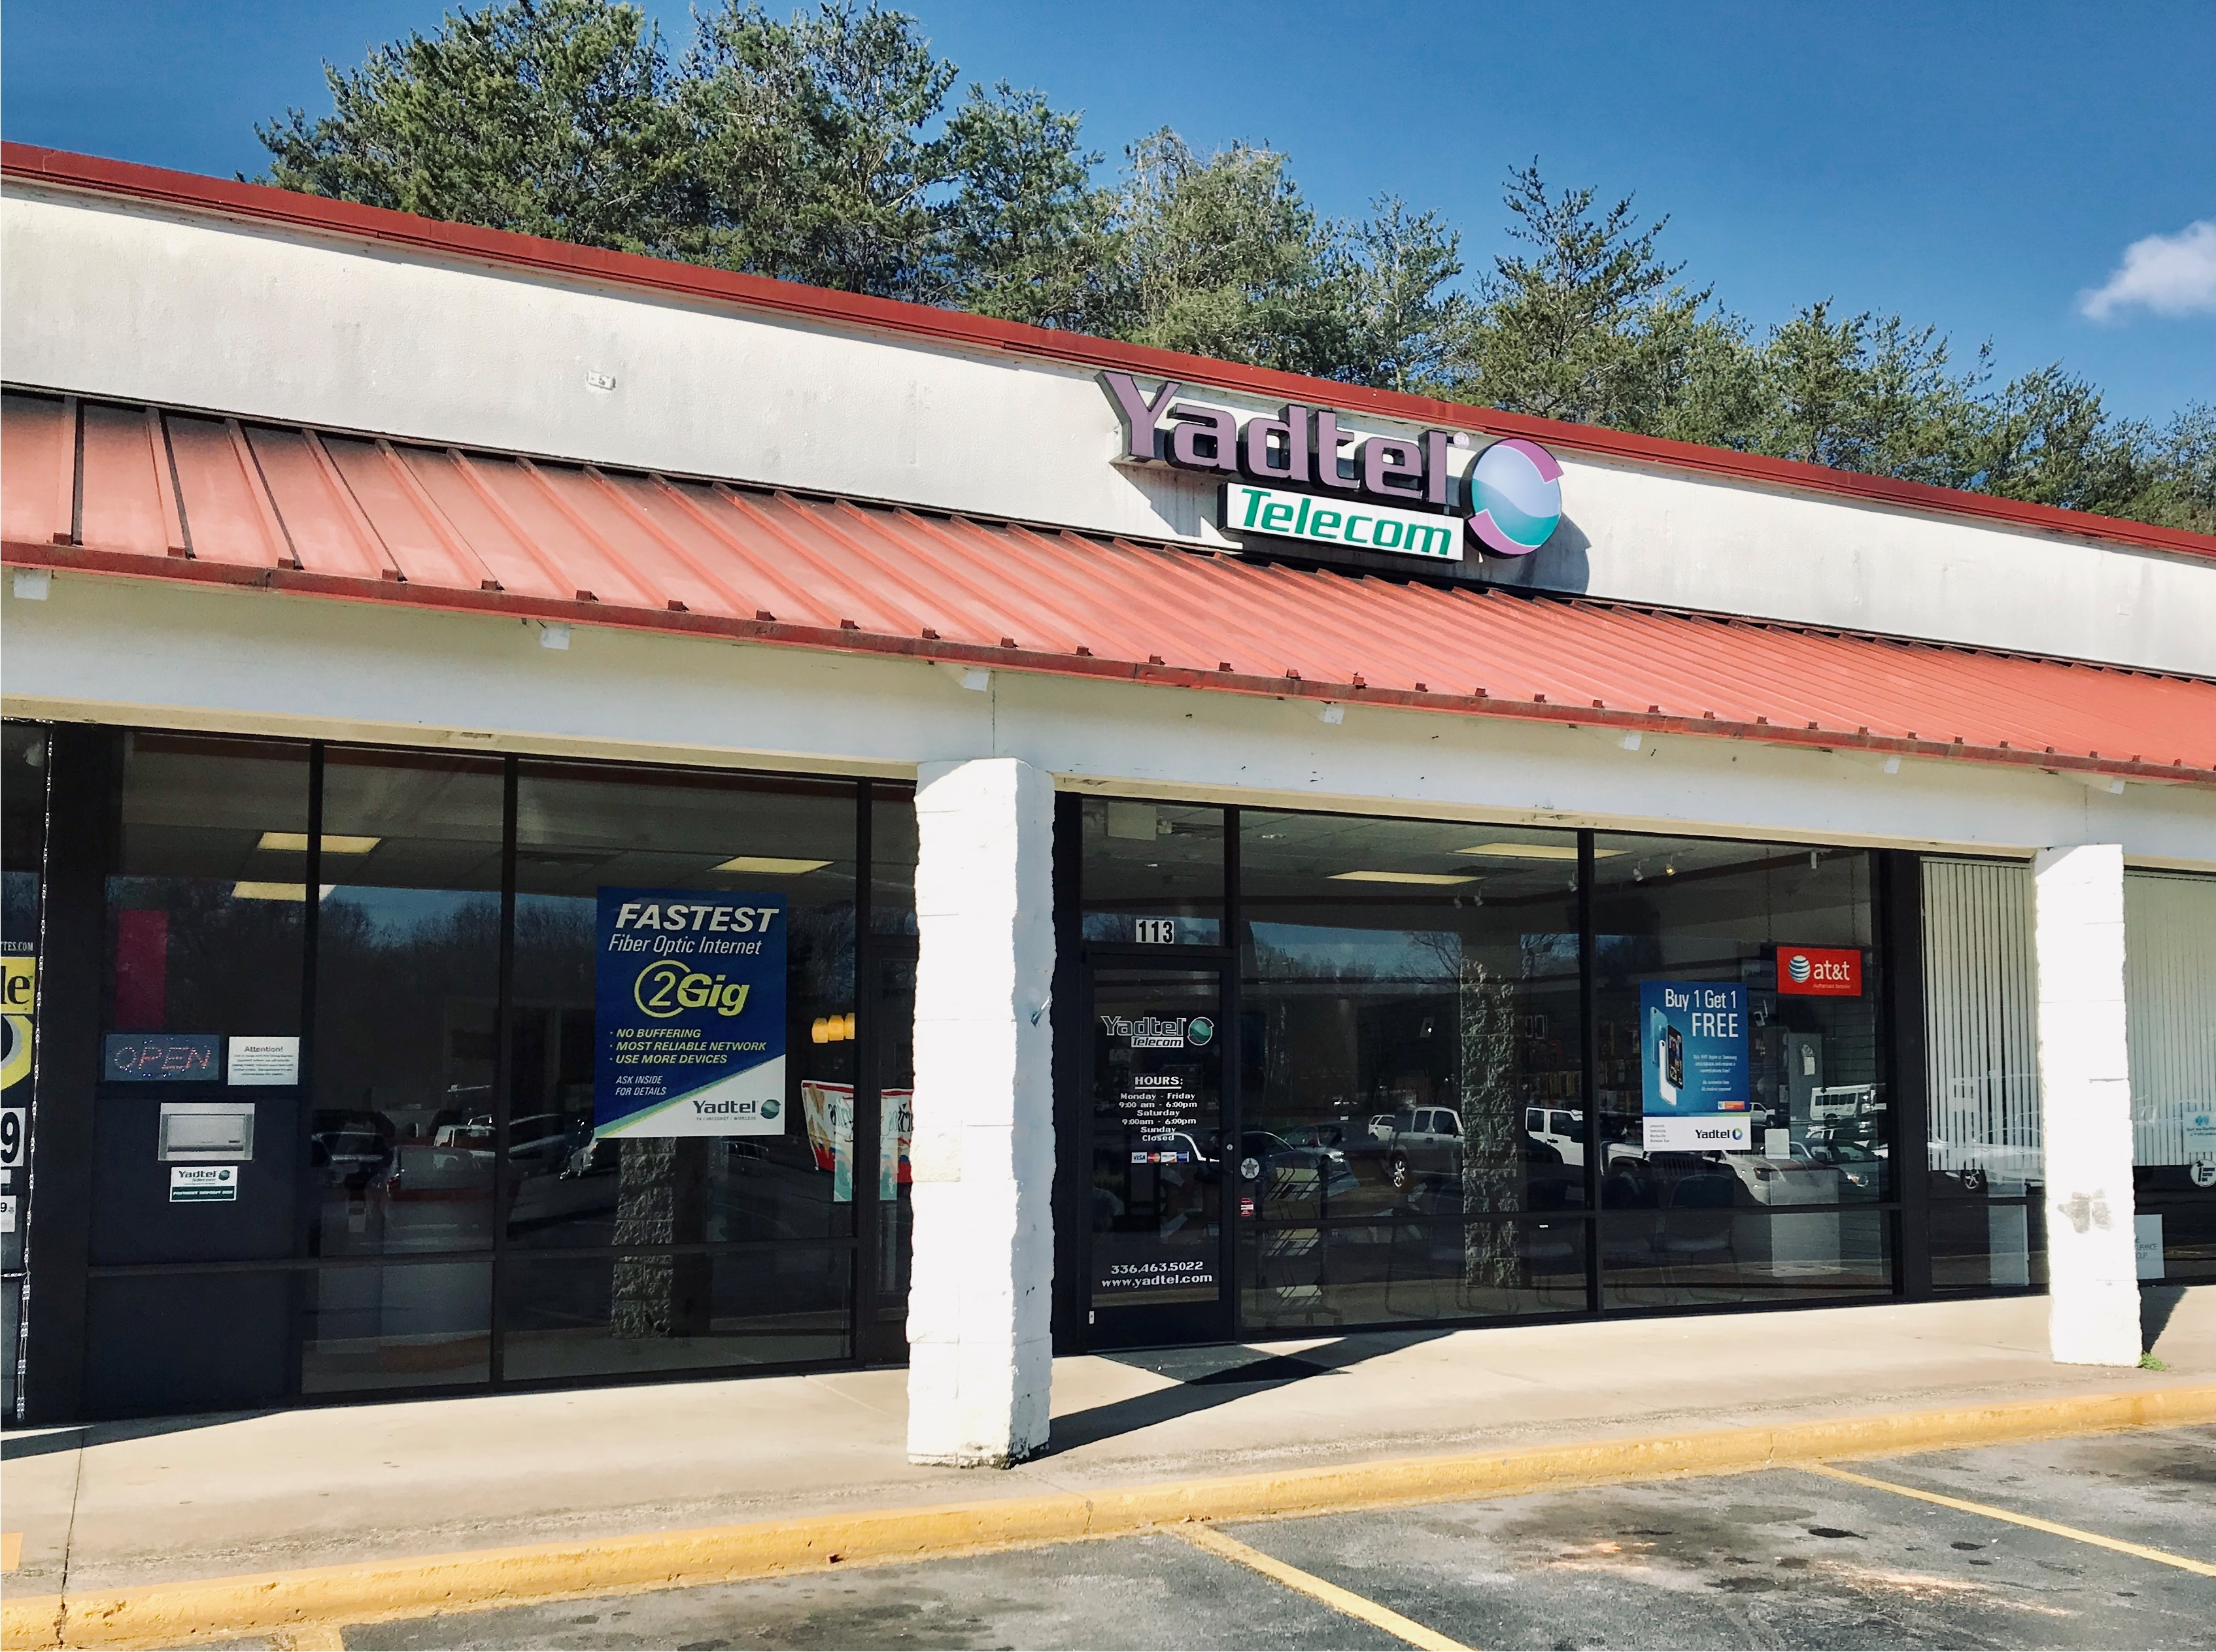 Yadtel Telecom reviews | Telecommunications at Foothills Market Shopping Center - Jonesville NC